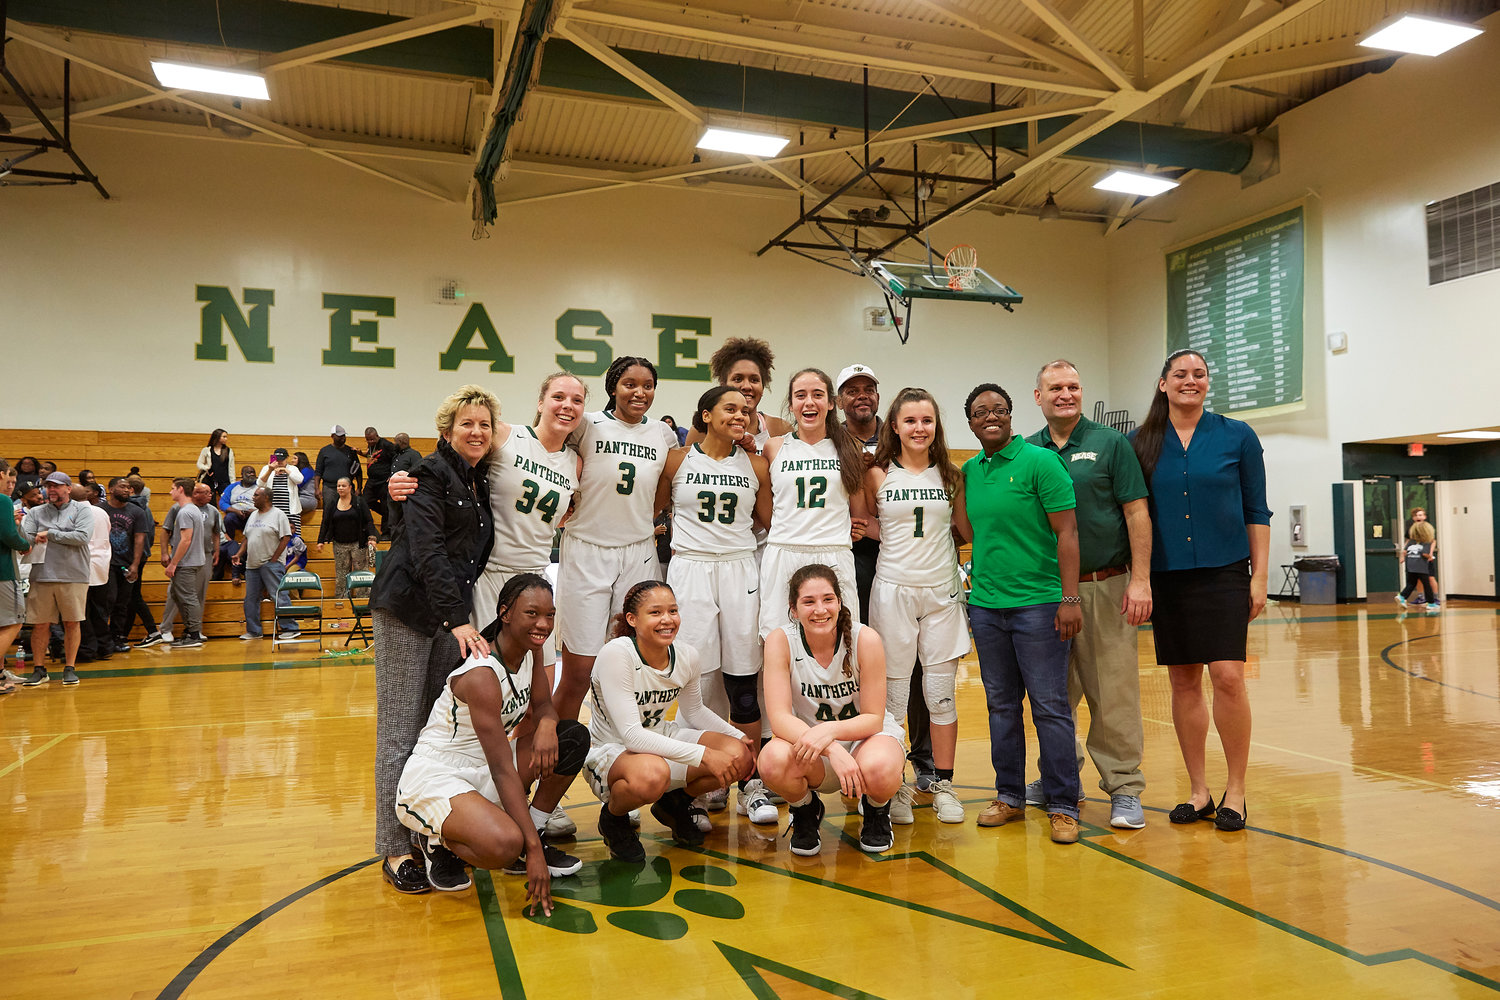 The Nease girls basketball team gathers after beating Booker T. Washington in the regional finals on Feb. 22 at home. The Lady Panthers will play Fort Myers in the state semifinals on March 1 at noon.